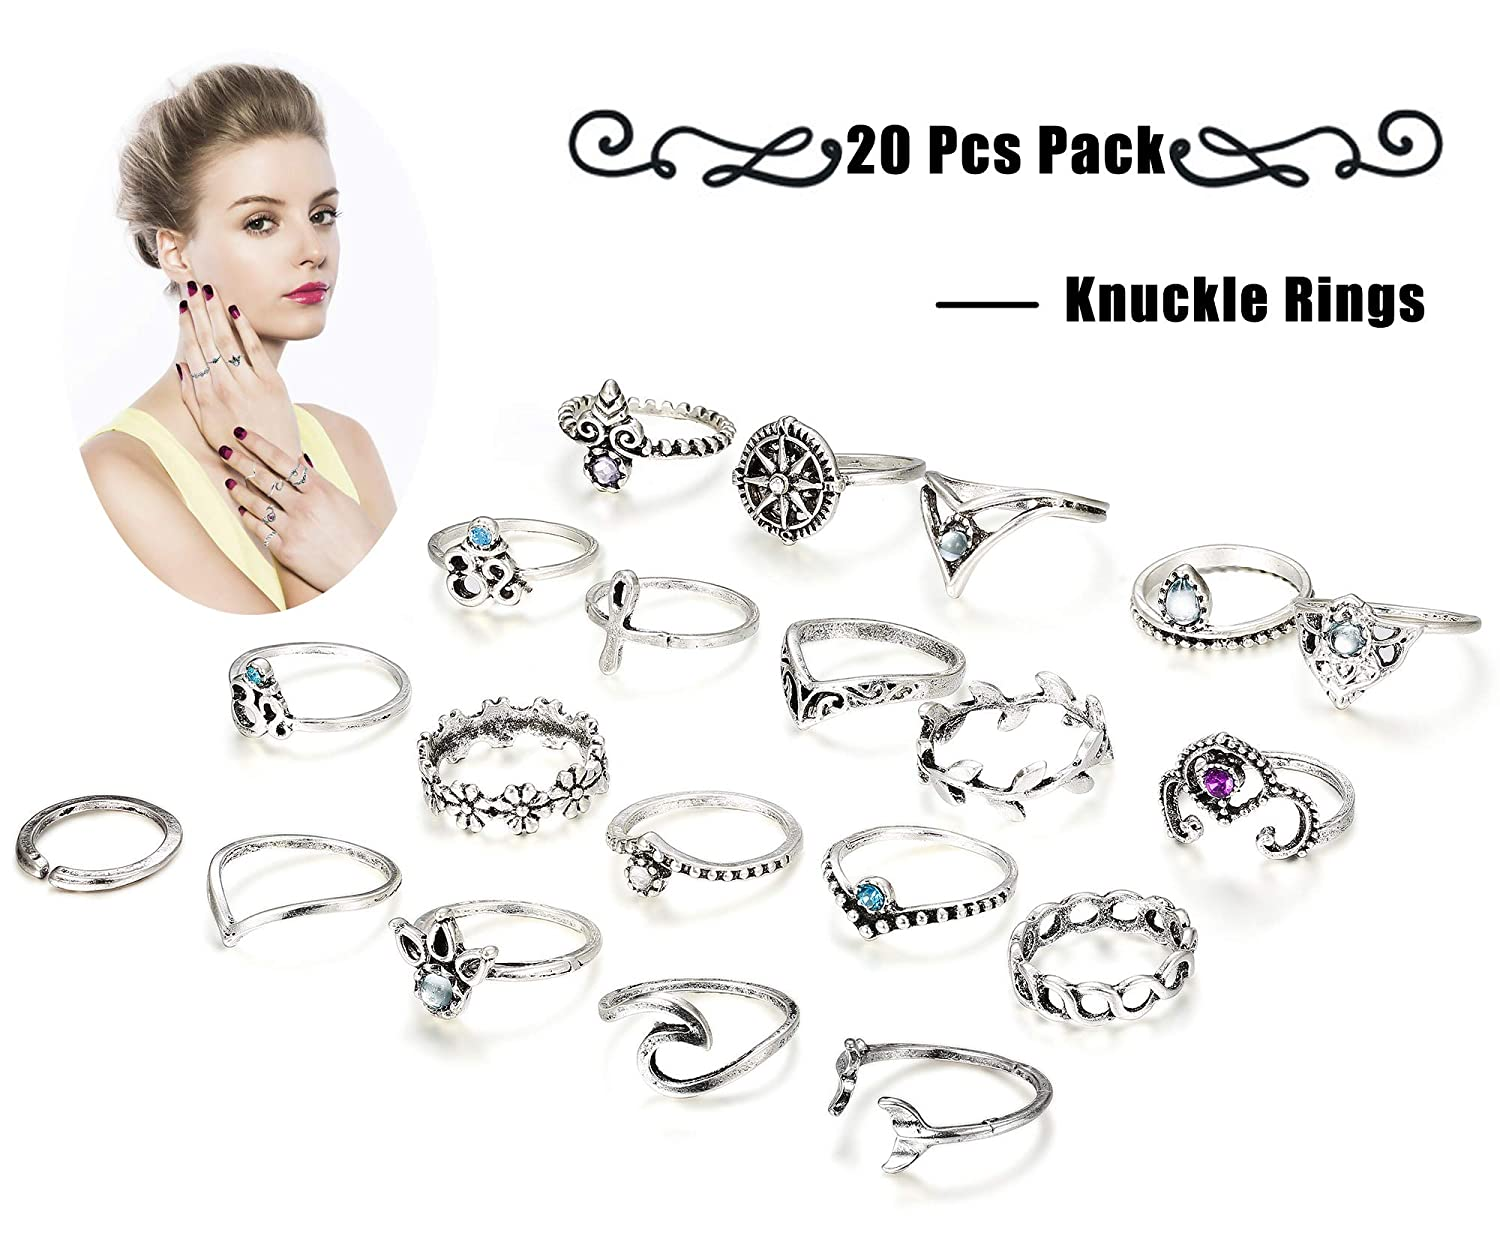 Finrezio 20 Pcs Knuckle Rings Vintage Stackable Midi Finger Ring Set for Women Girls Bohemian Retro Vintage Jewelry B07GX9H7C5_US